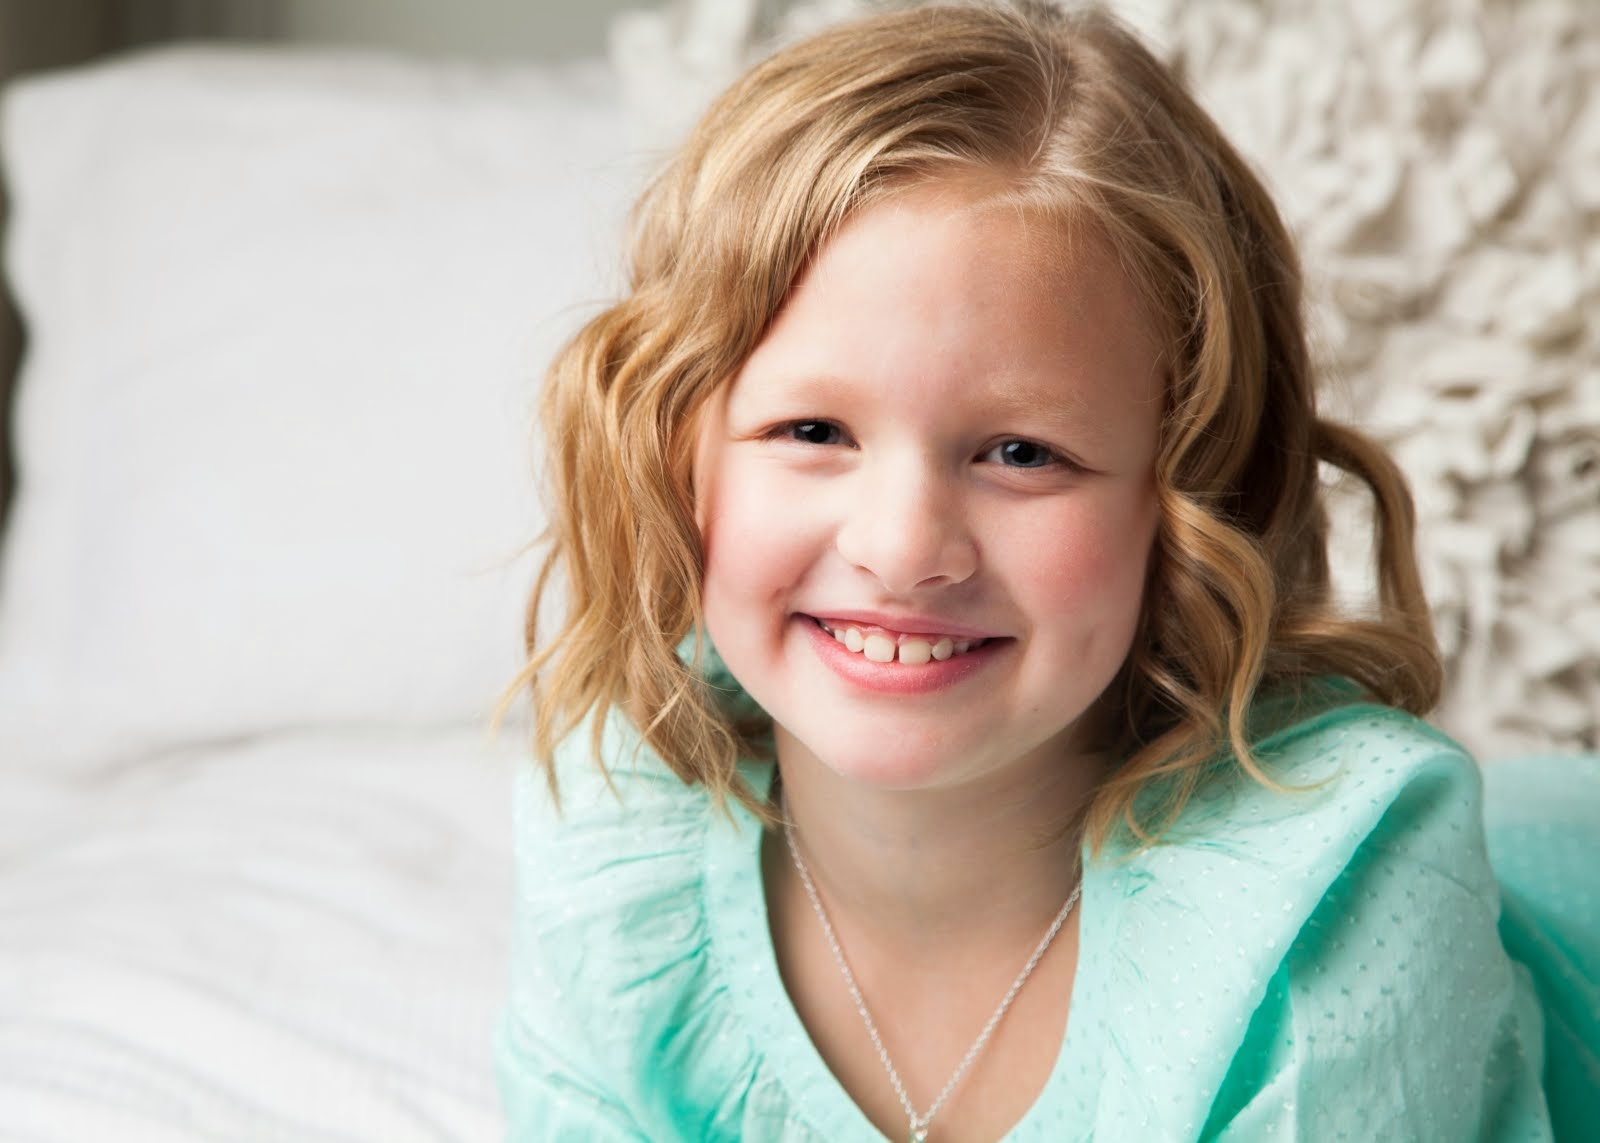 Miss Addison Jayne Age 7